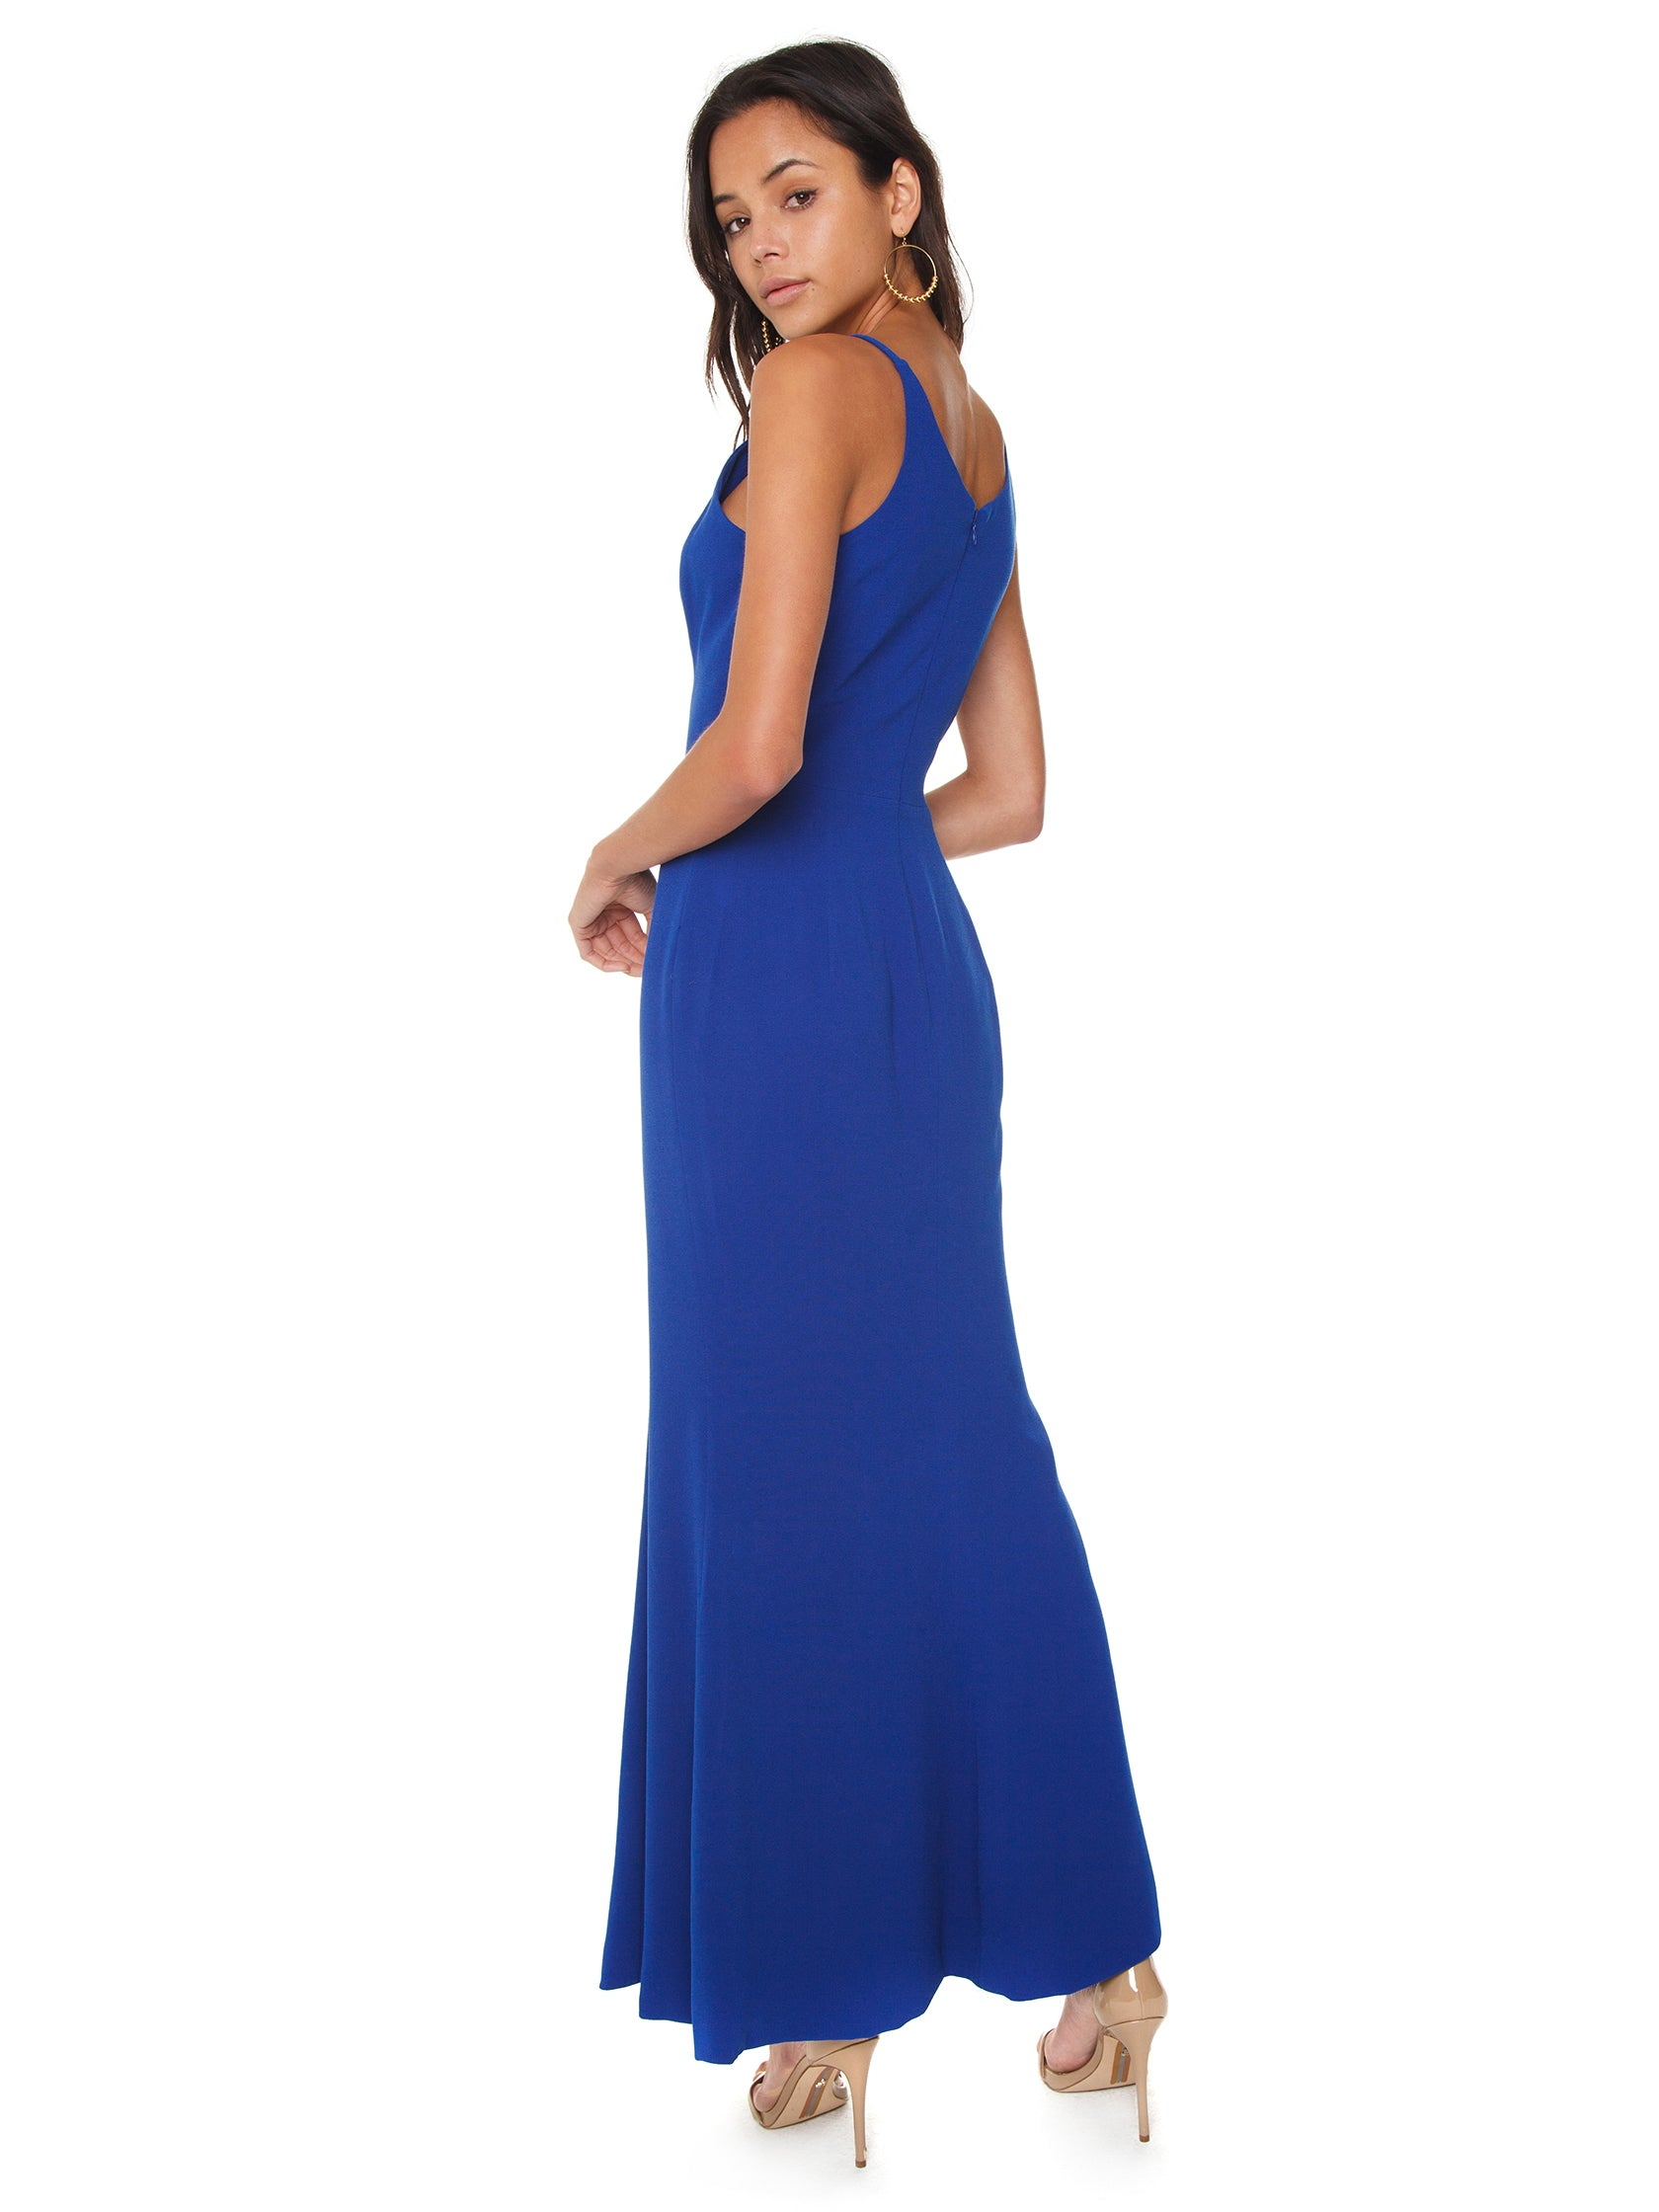 Women wearing a dress rental from Dress the Population called Iris Crepe Side Slit Gown